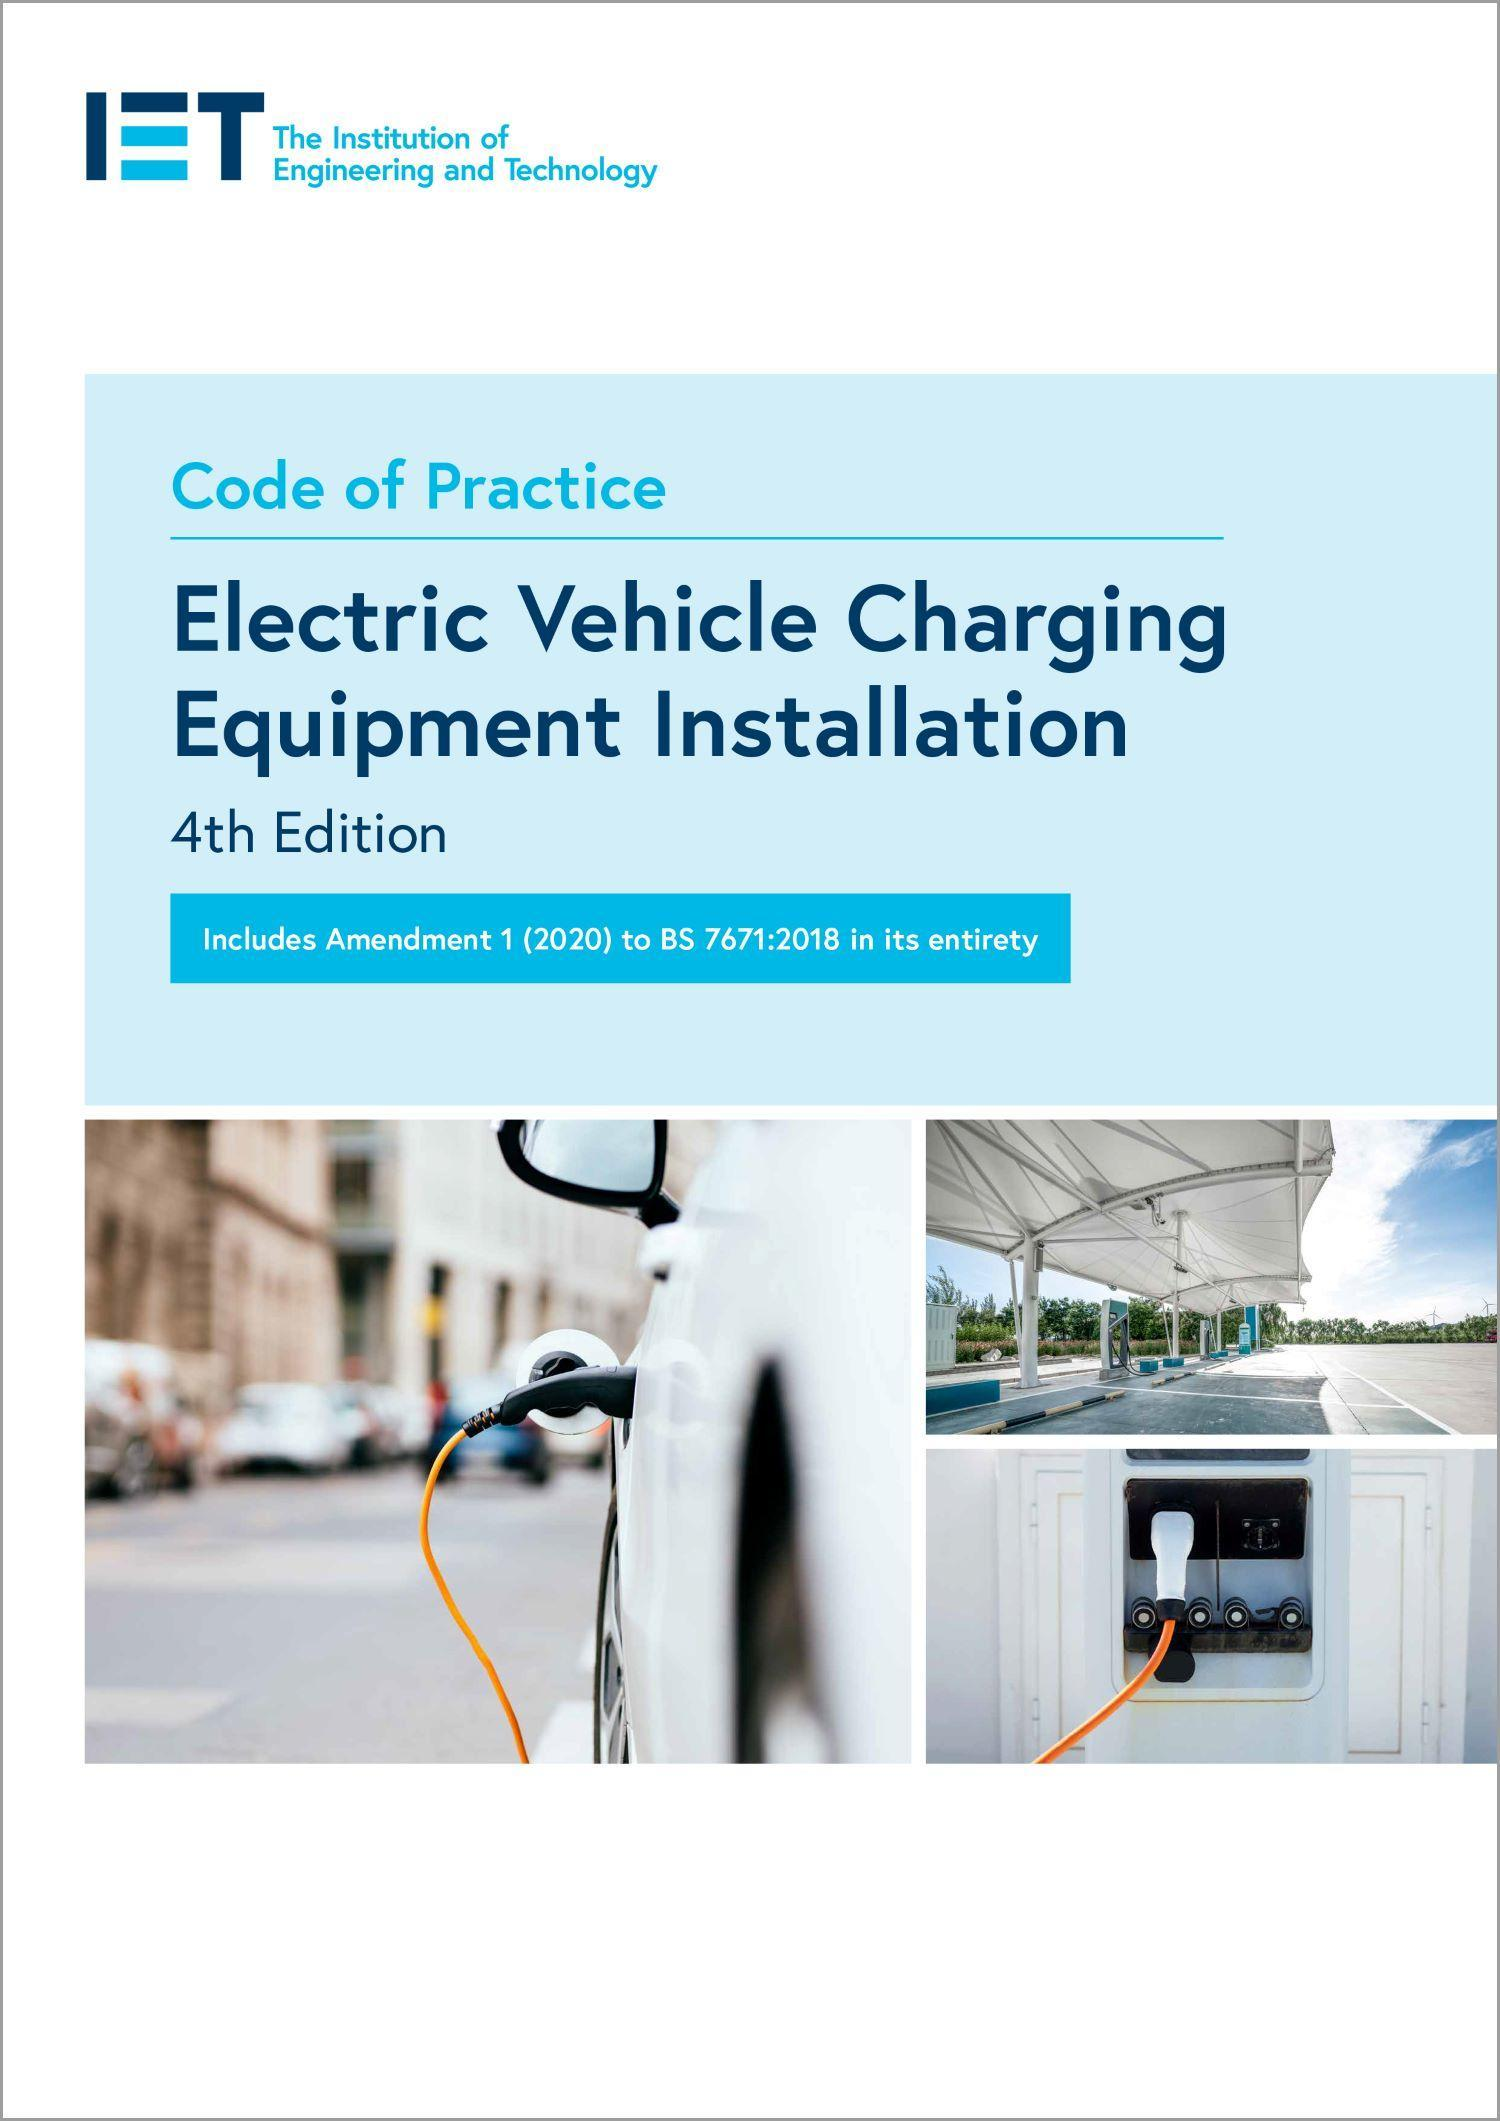 Electric Vehicle Charging Equipment Installation